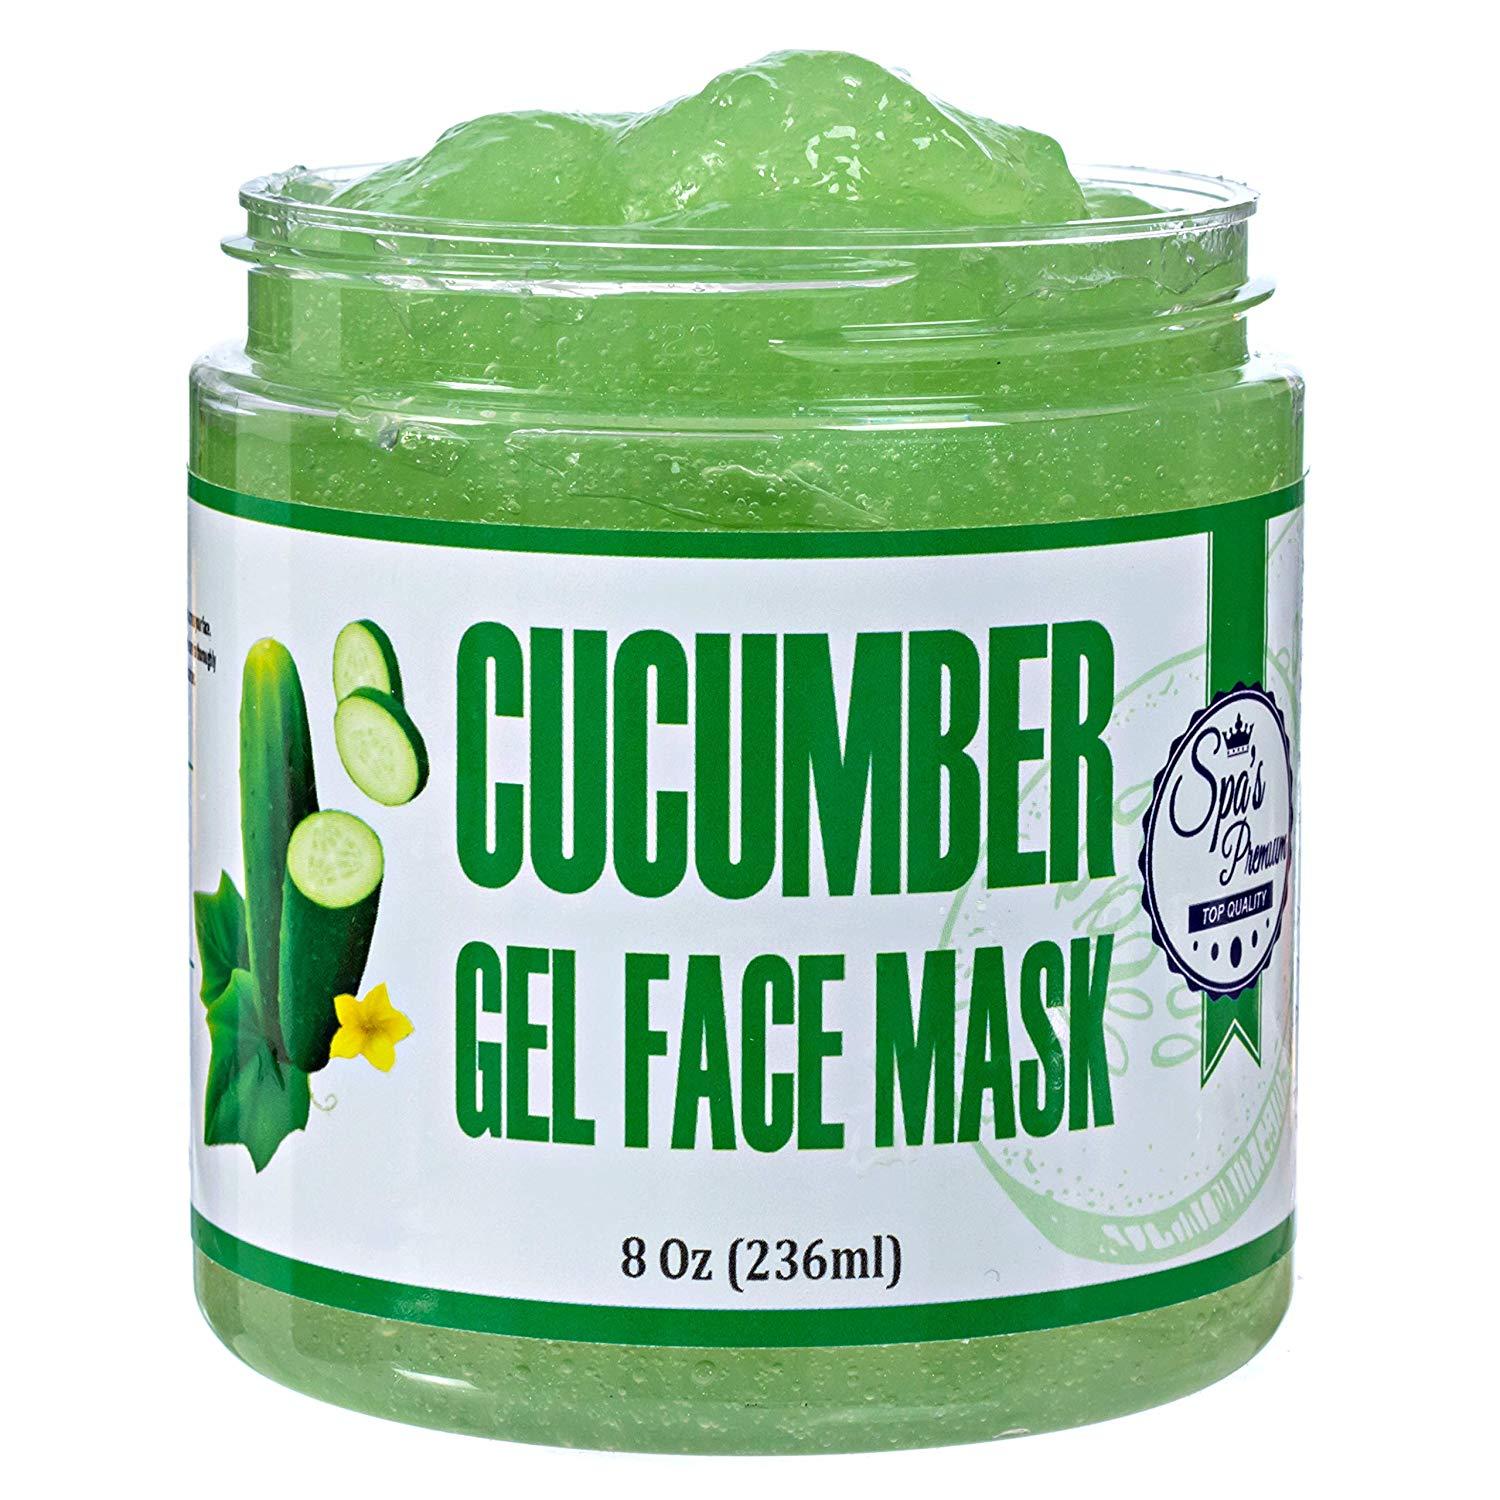 Spa's Premium Cucumber Gel Face Mask, Deep purifying hydrating cucumber mask, anti-inflammatory and soothing, Gel mask with antioxidants and vitamins.